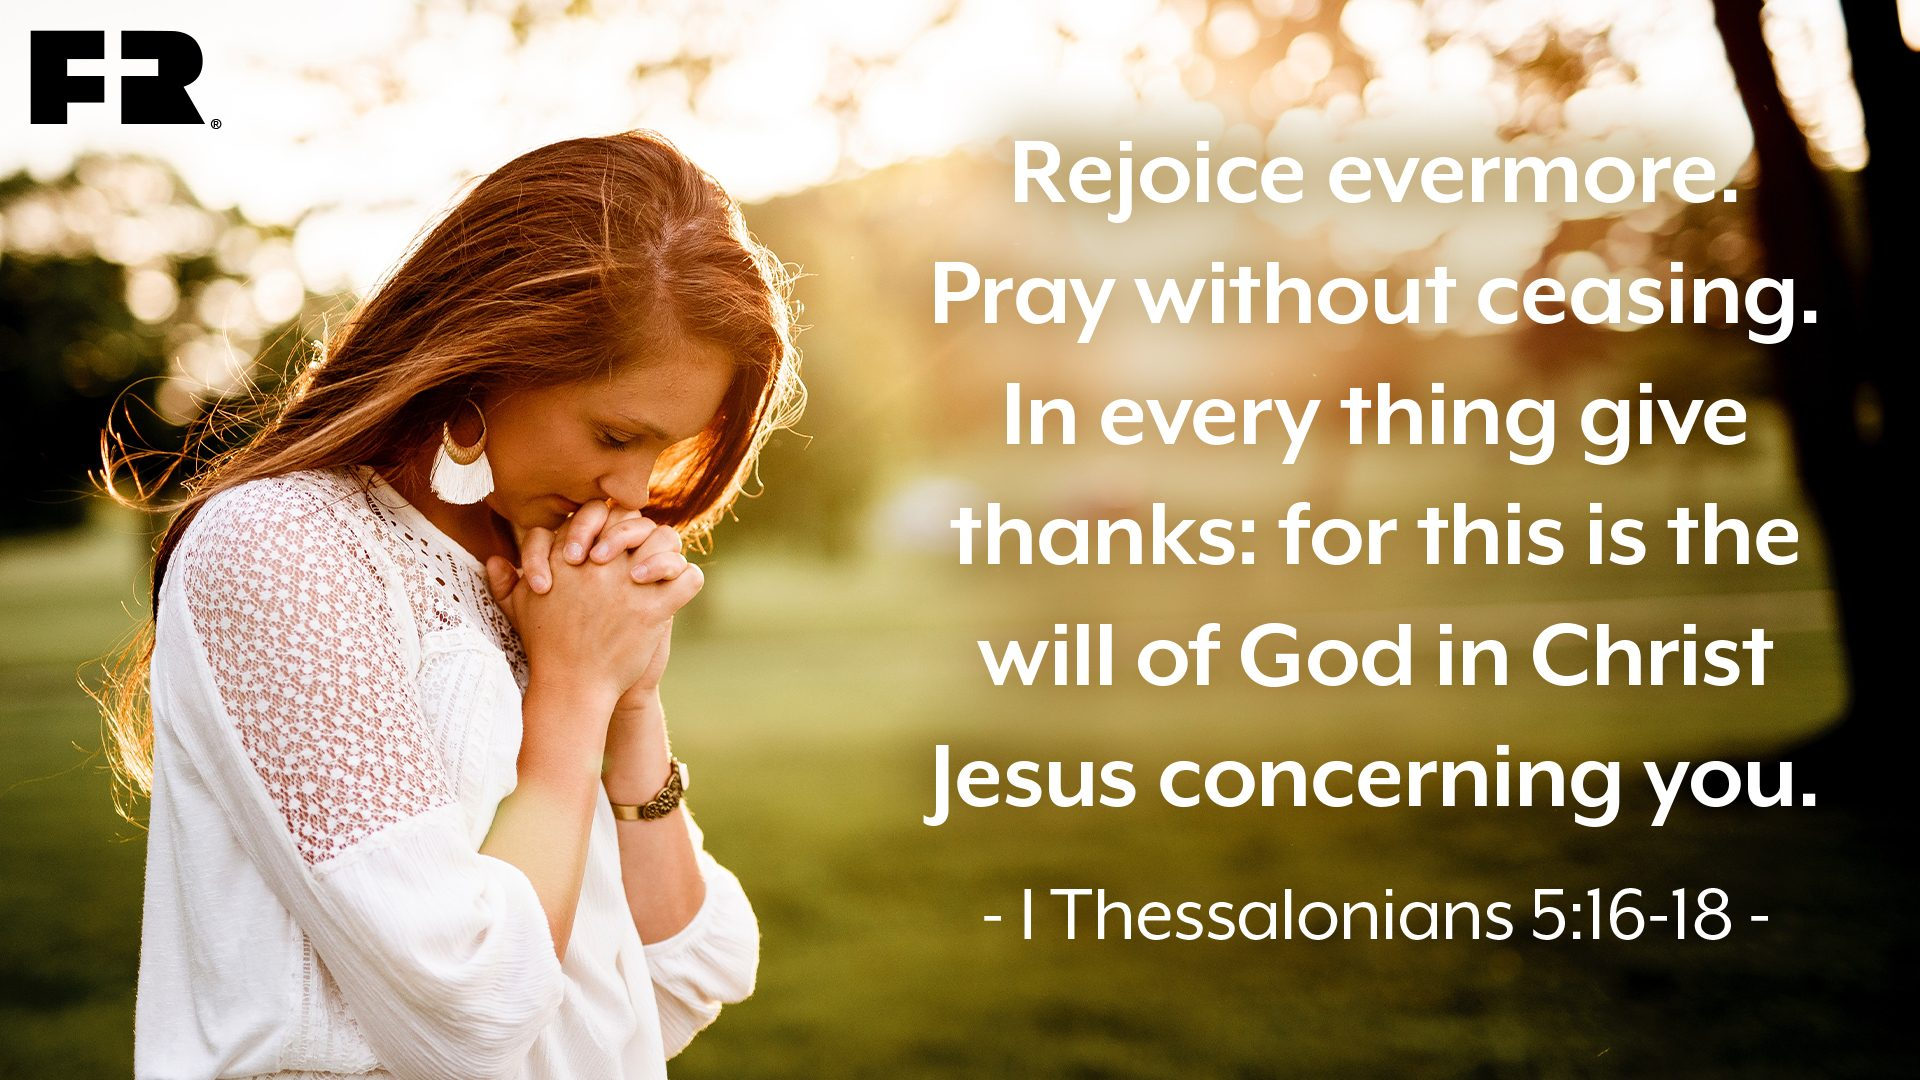 """Rejoice evermore. Pray without ceasing. In every thing give thanks: for this is the will of God in Christ Jesus concerning you."""